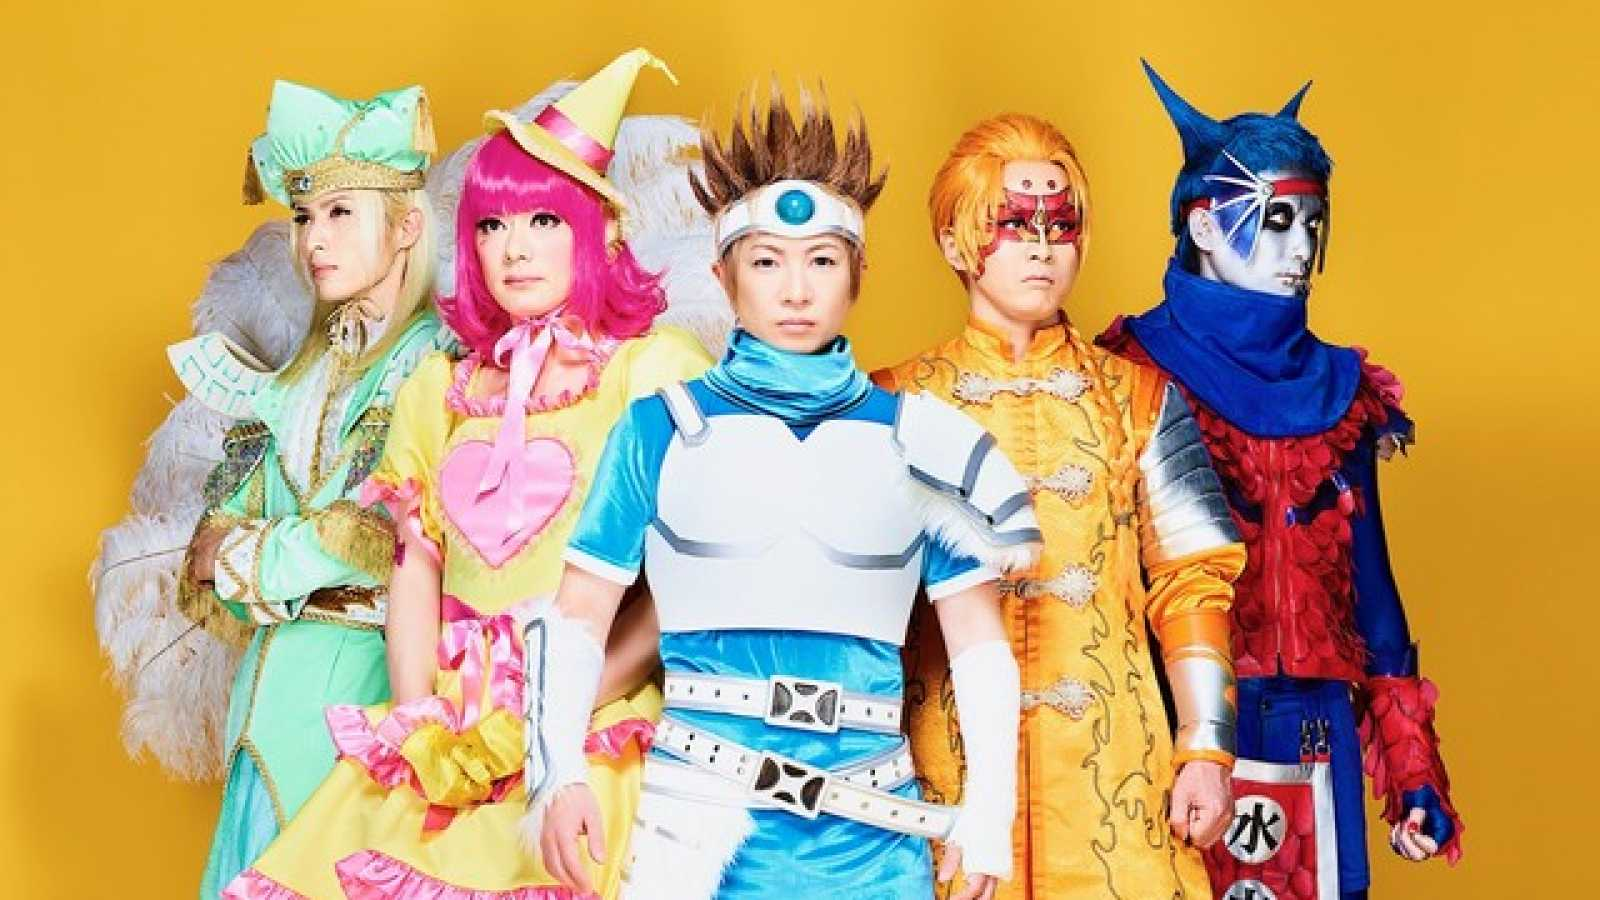 Psycho le Cému Announces No-Audience Live Streaming Concert © Psycho le Cemu. All rights reserved.